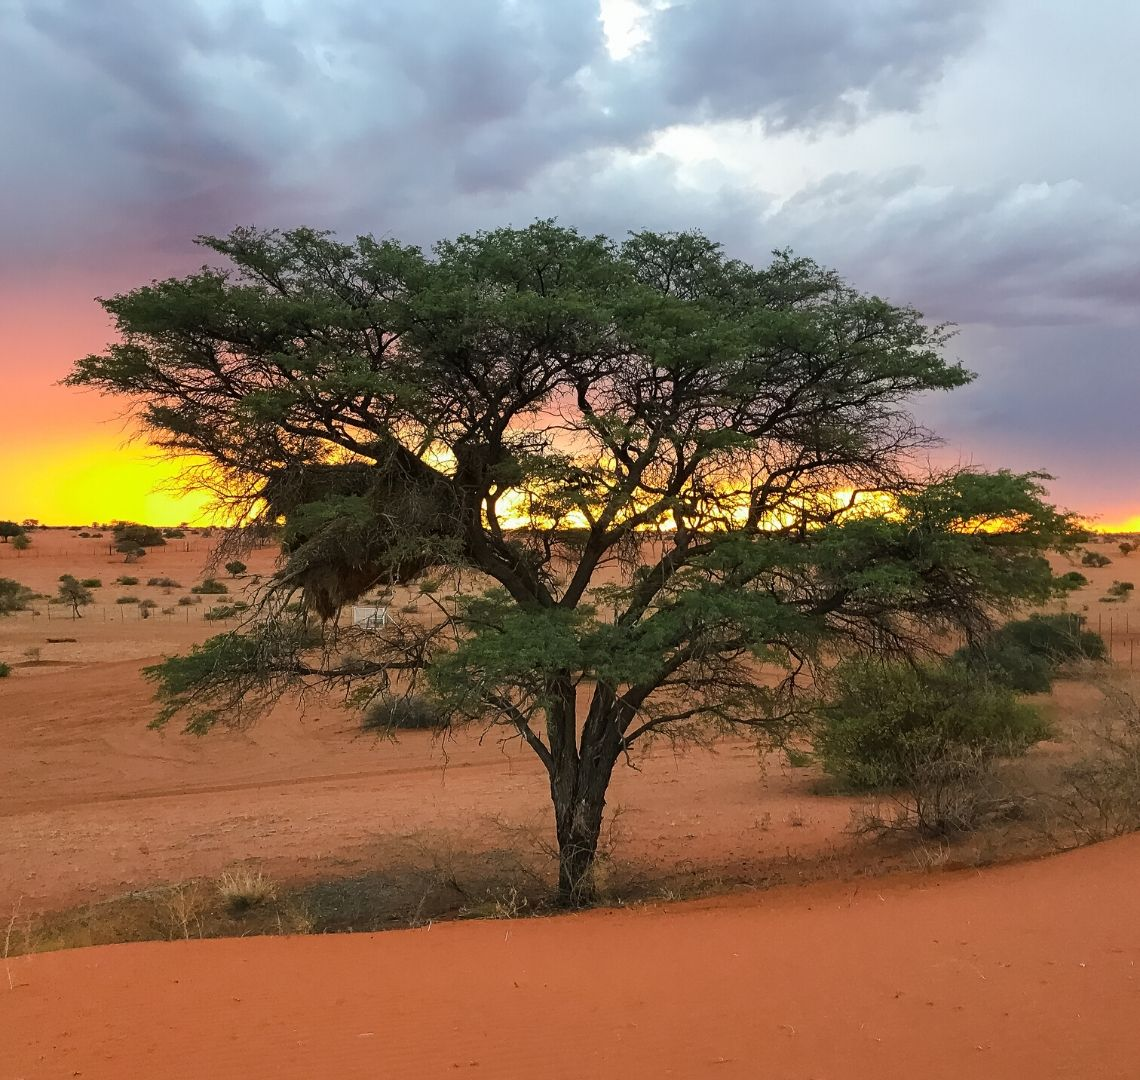 2 Week Namibia Itinerary - sunset in the Kalahari, this is a green tree in the foreground growing out of burnt red sand. On the horizon is a bright red, yellow and orange sunset with purple and grey storm clouds on the right